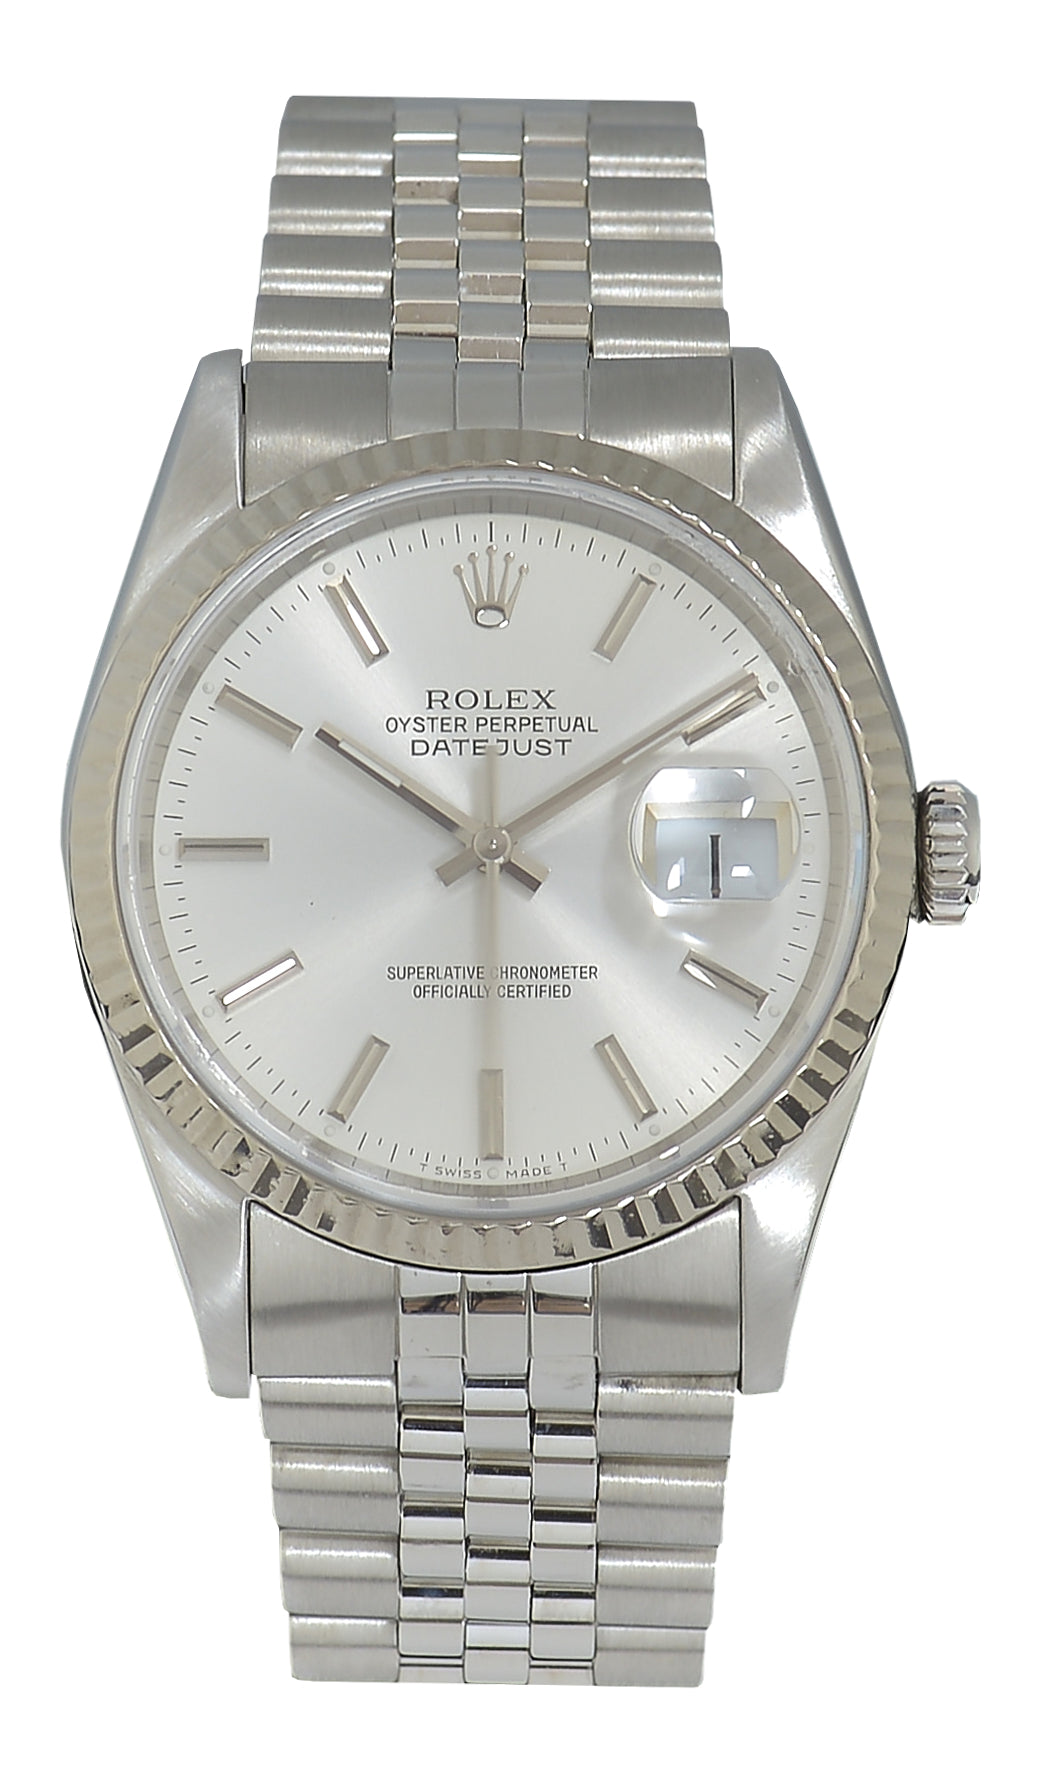 Rolex Datejust Steel Watch with Silver Dial Ref: 16234 (1996)